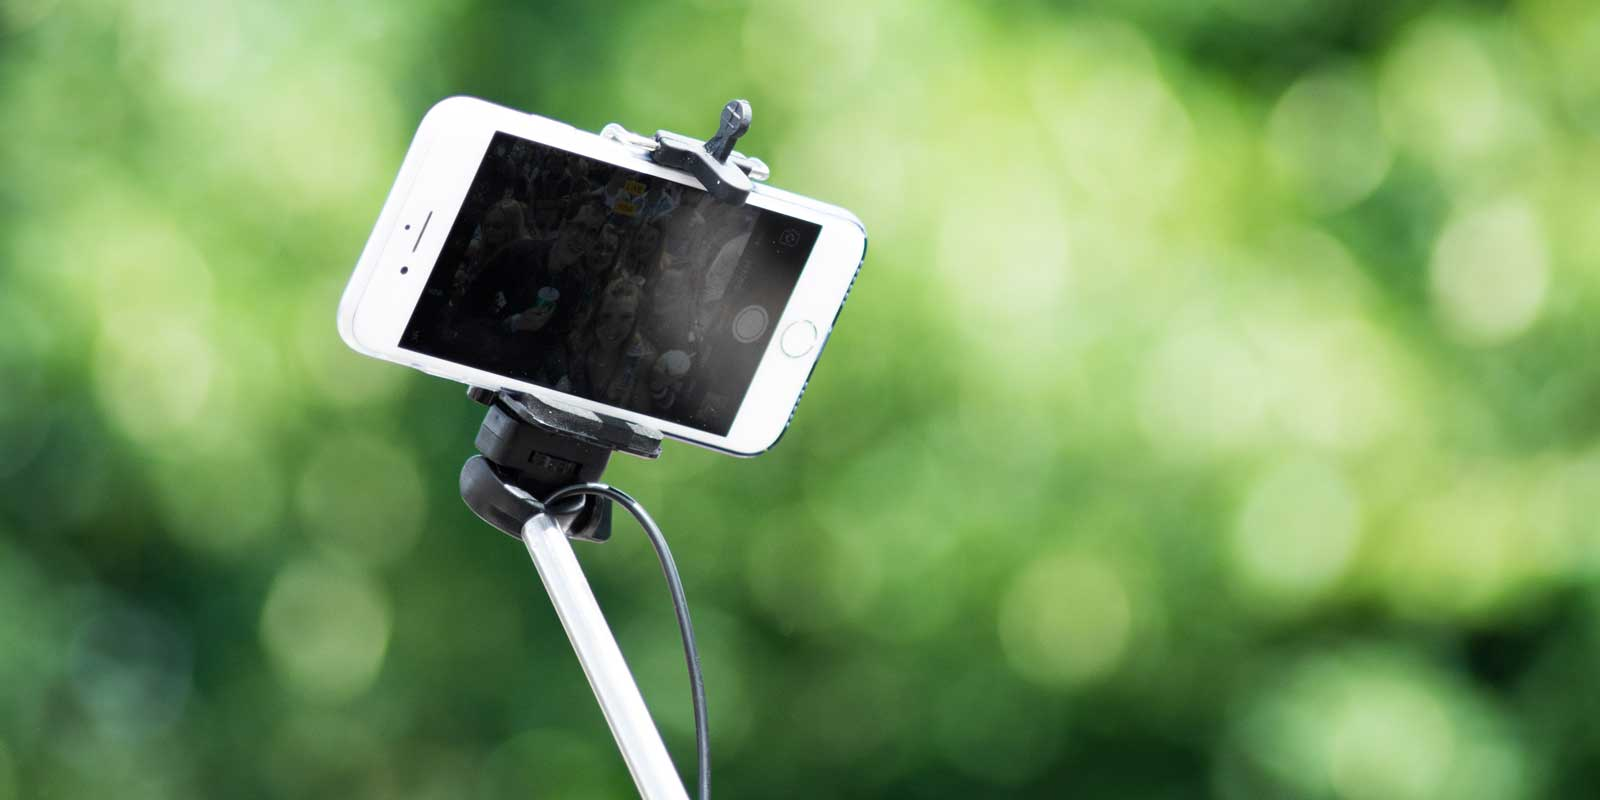 Selfie sticks are banned at Disney World. Check out this post to find out the rest of Disney World's camera rules.